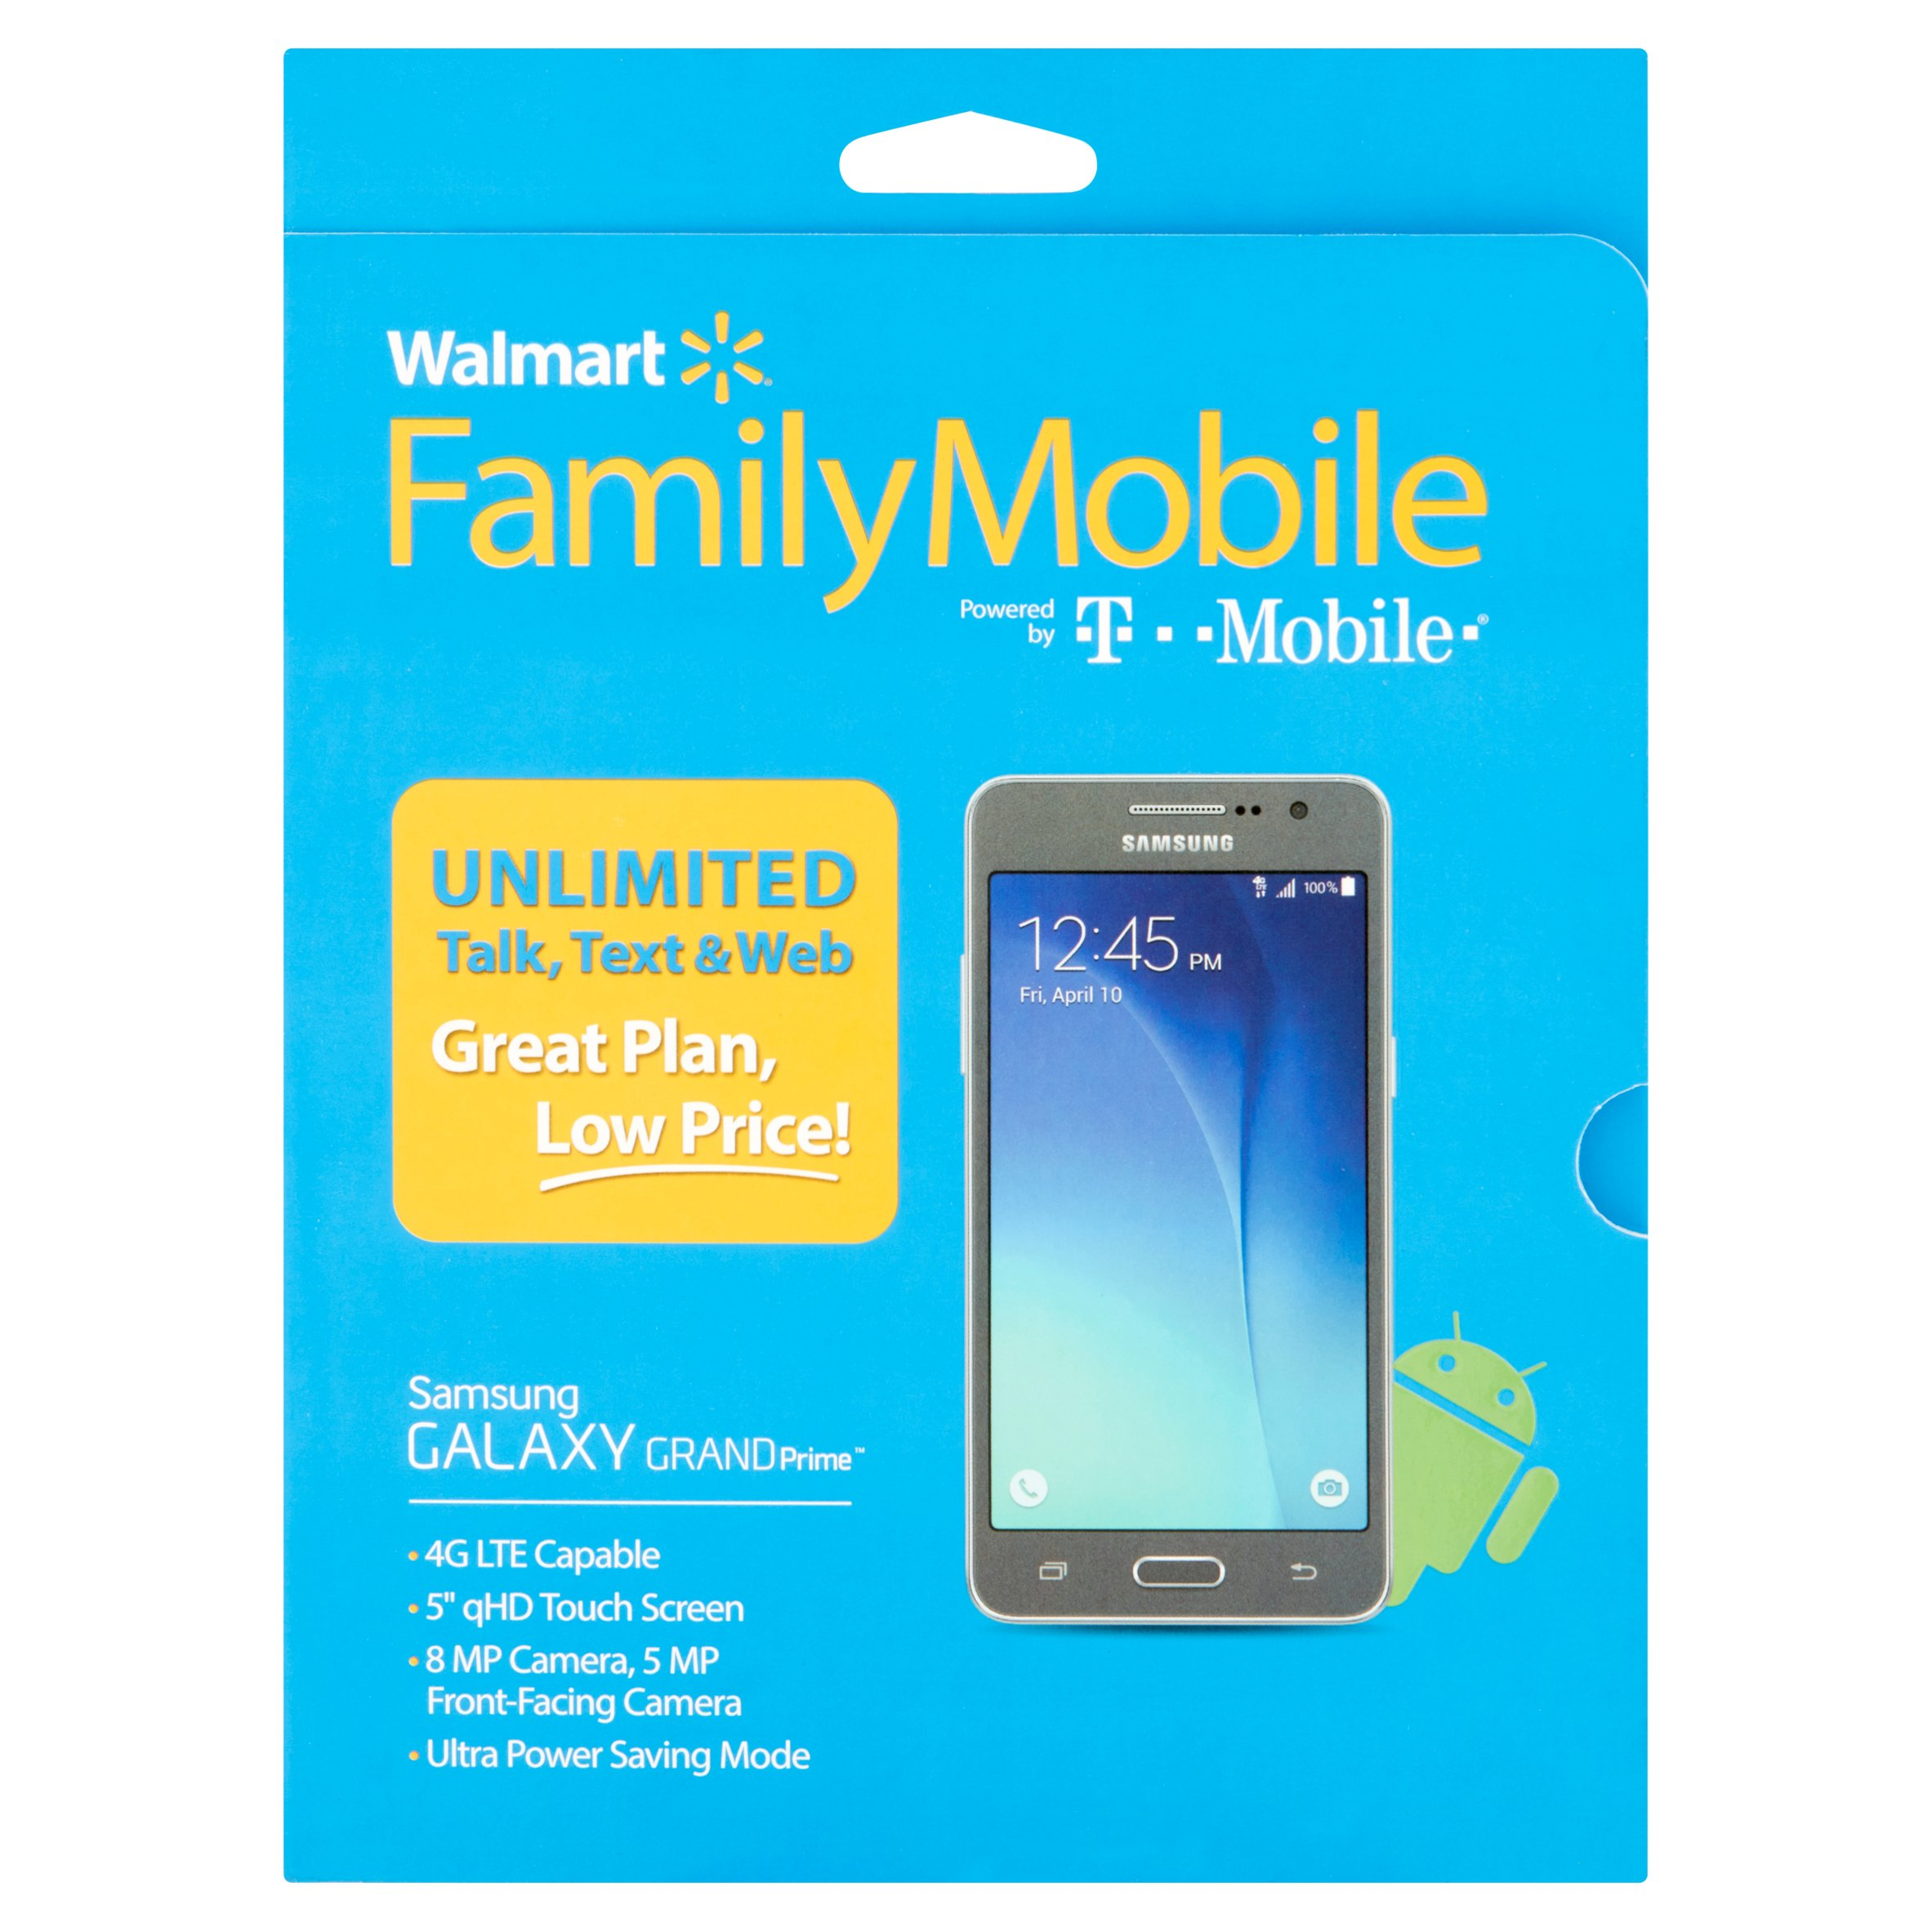 Walmart Family Mobile Samsung Galaxy Grand Prime Smartphone - Gray